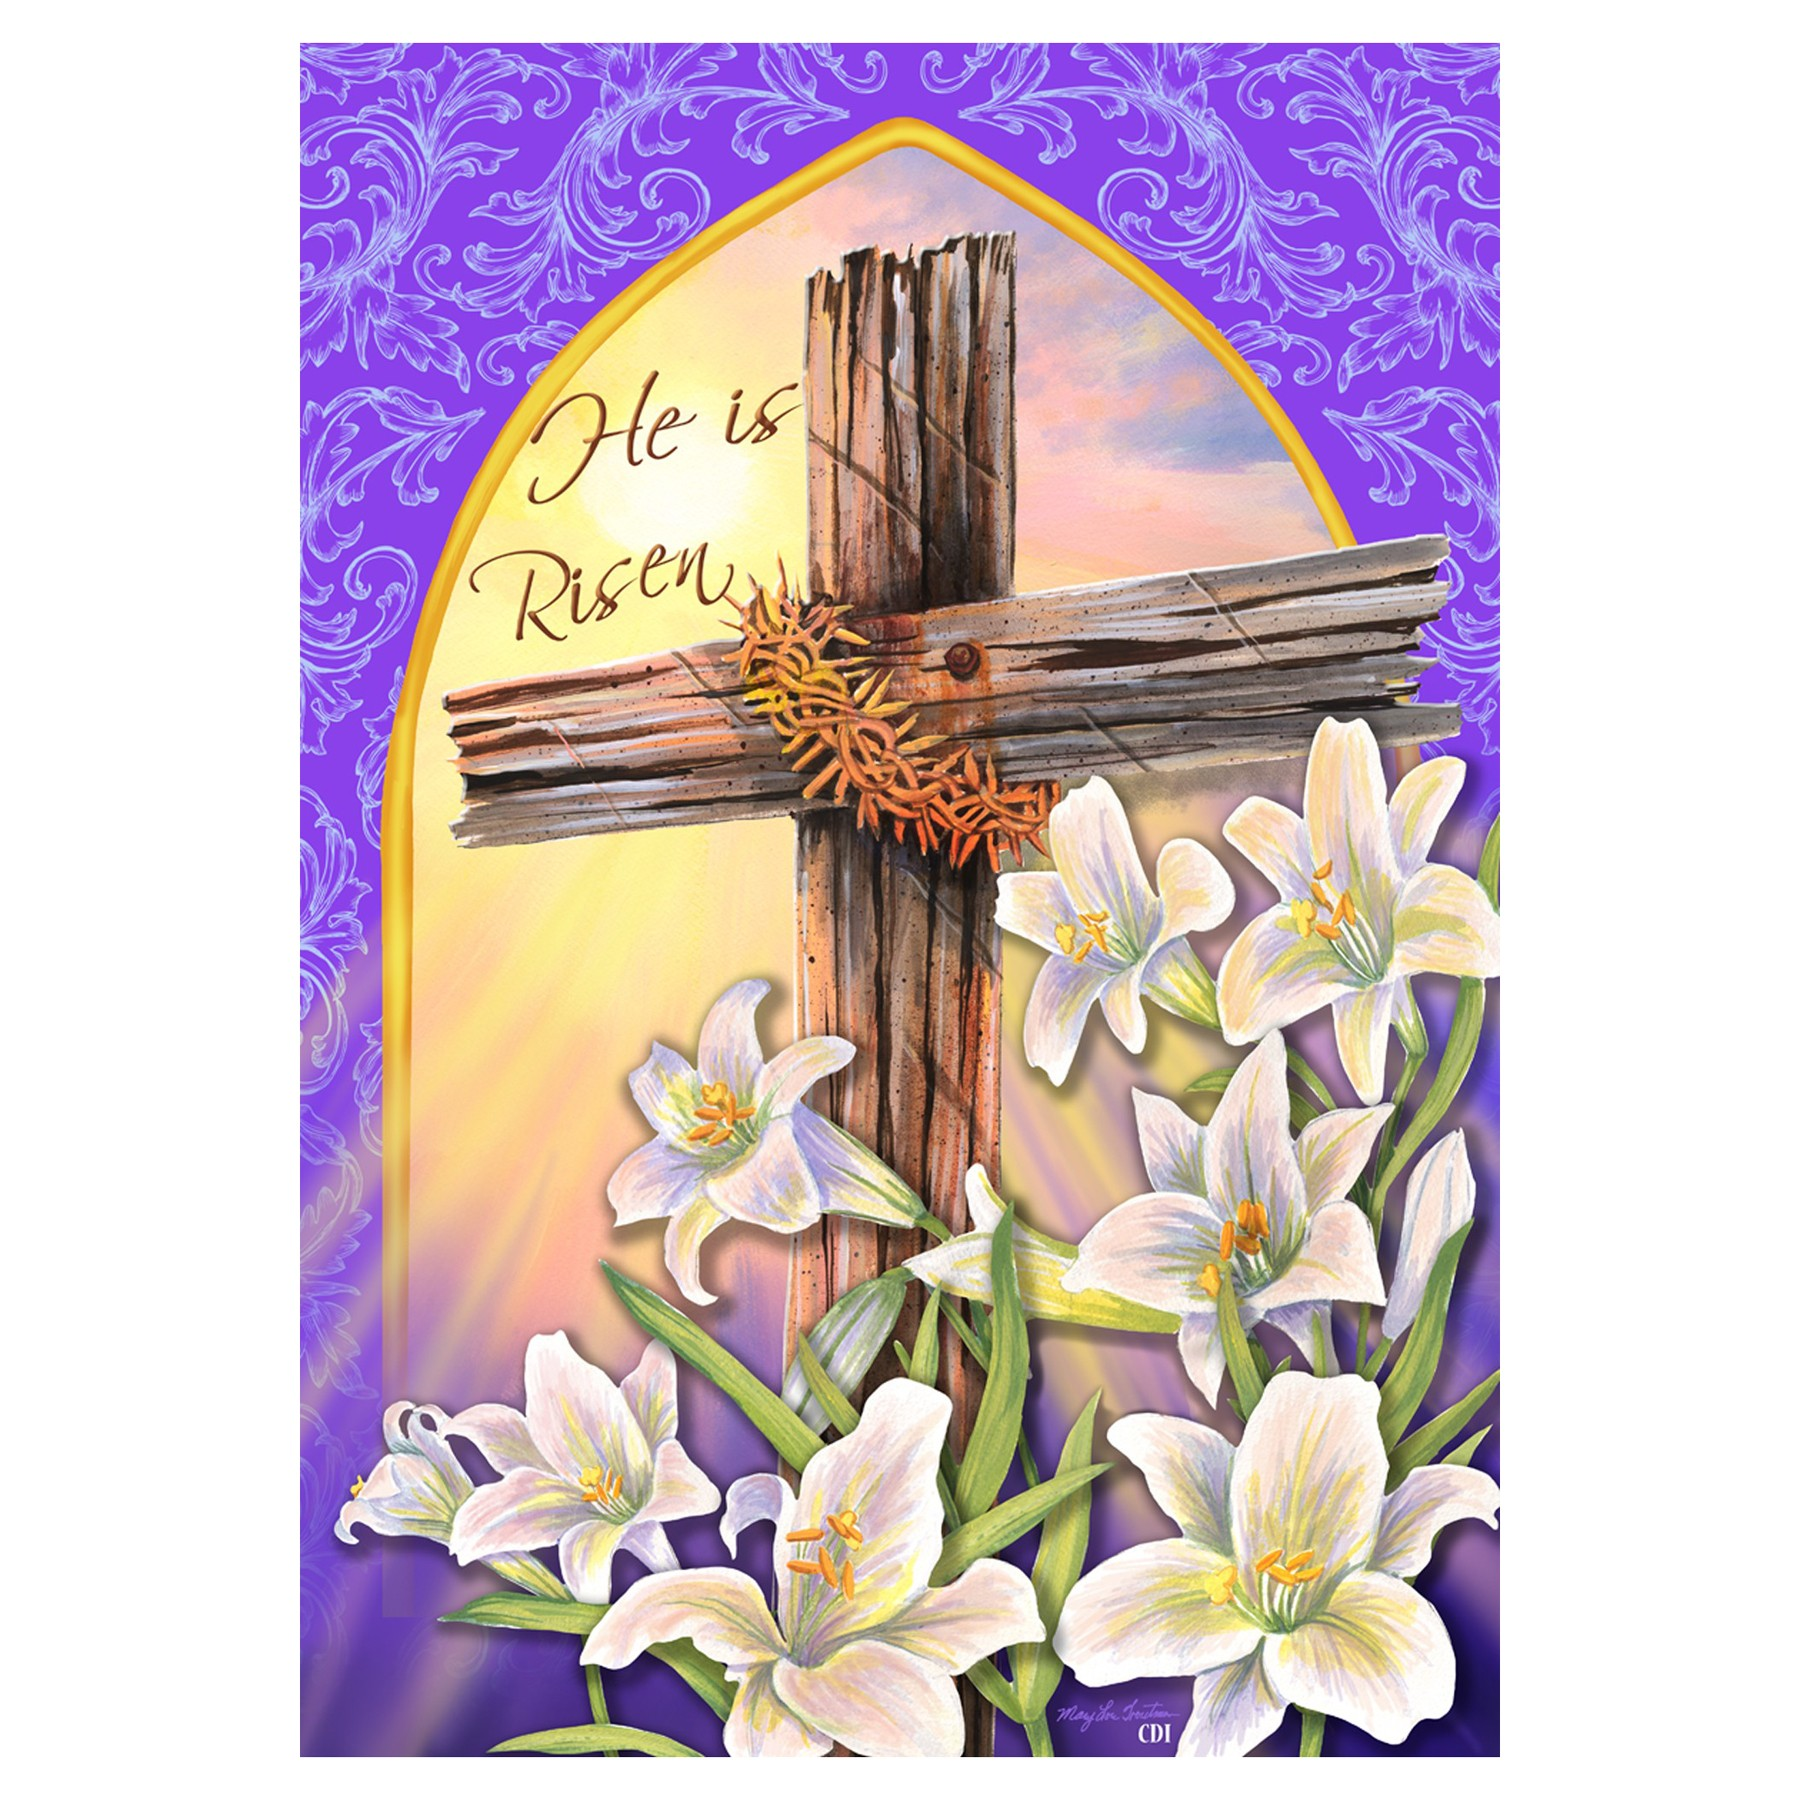 Wood crosses flowers clipart vector black and white download Images For Rugged Wood Cross - Clip Art Library vector black and white download